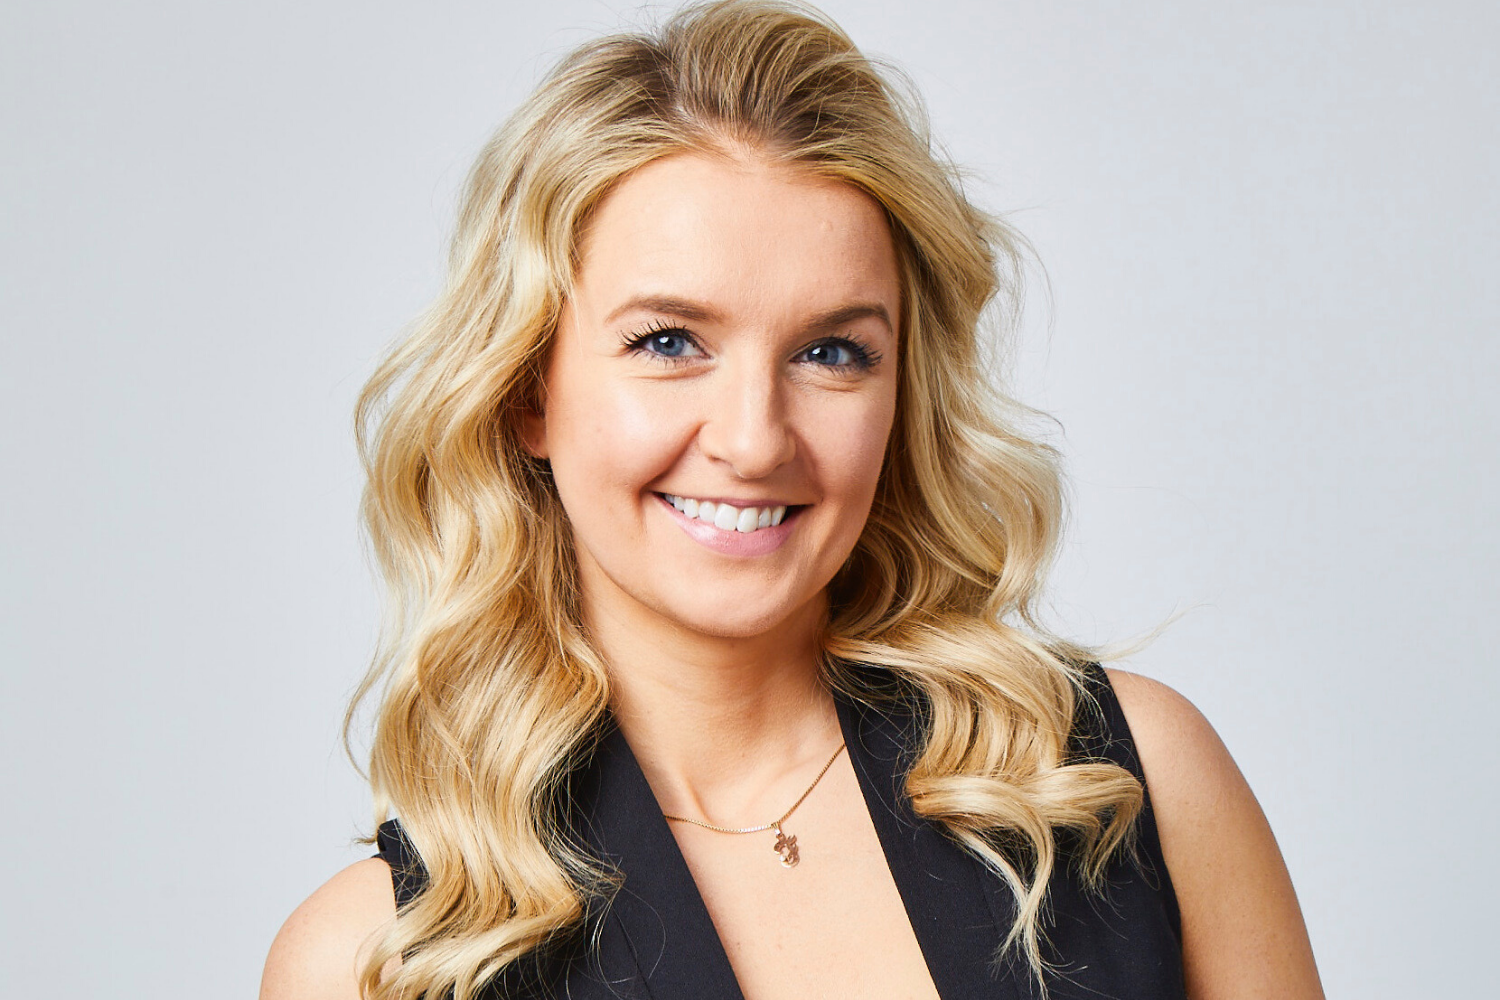 Faye Brennan '09 found success as the Sex & Relationship Director at Cosmopolitan Magazine after she founded Em Magazine at Emerson College. Photo credit: Courtesy Faye Brennan